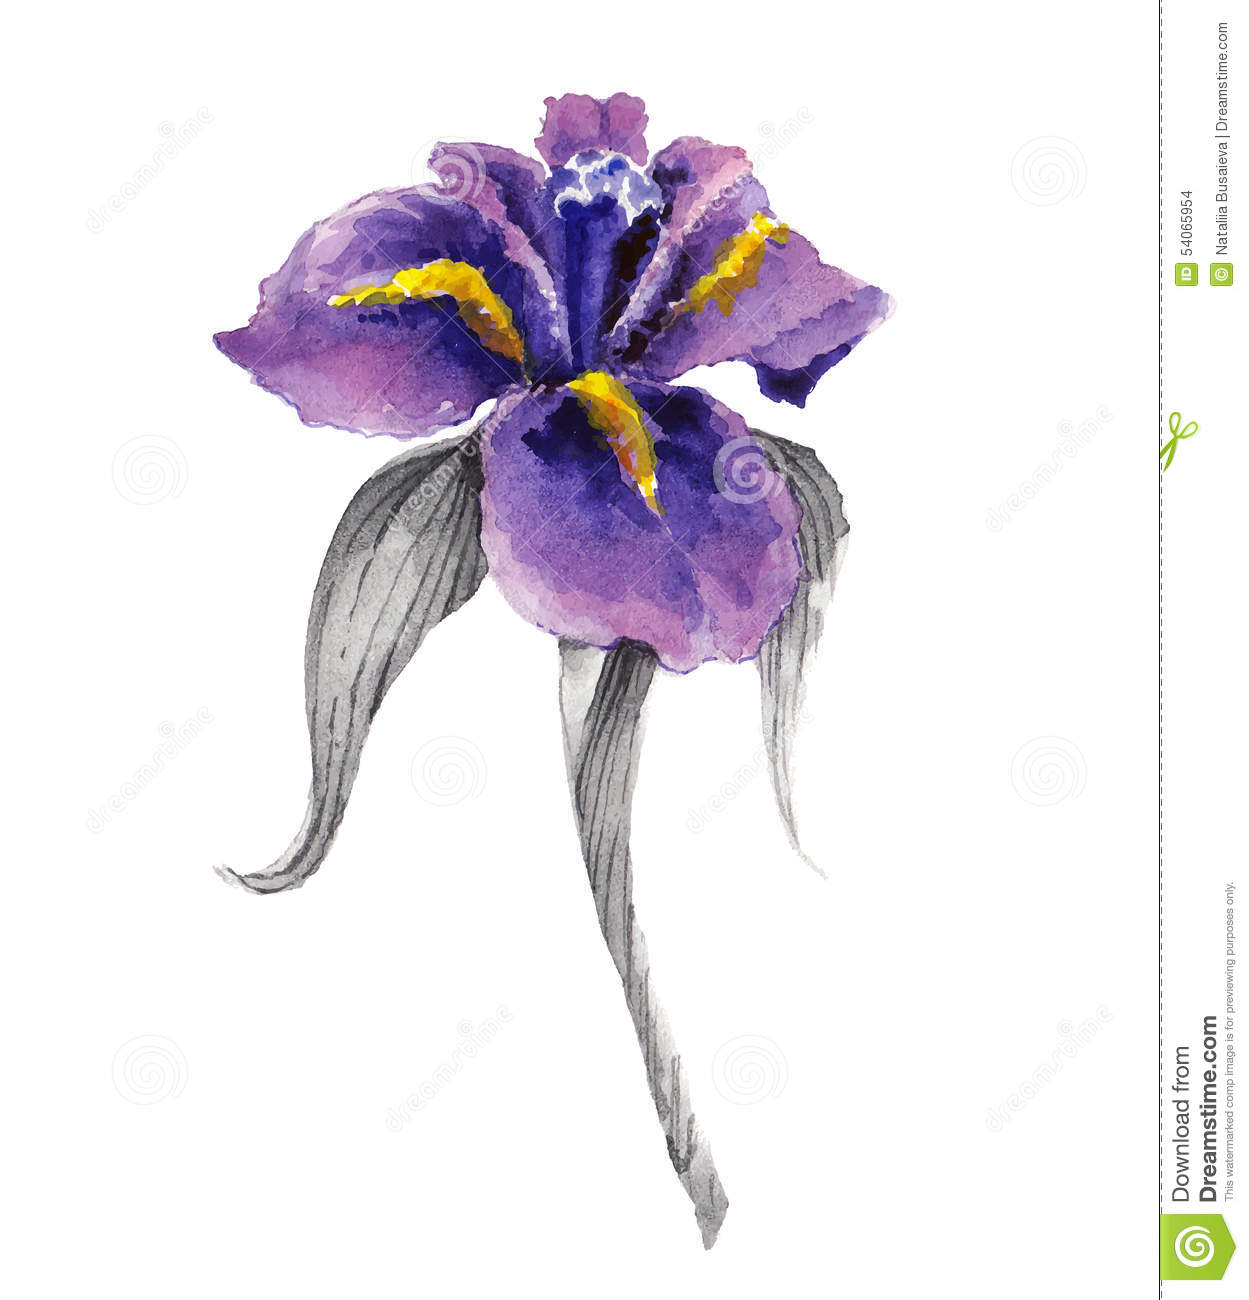 Iris flower watercolor floral illustration vector illustration